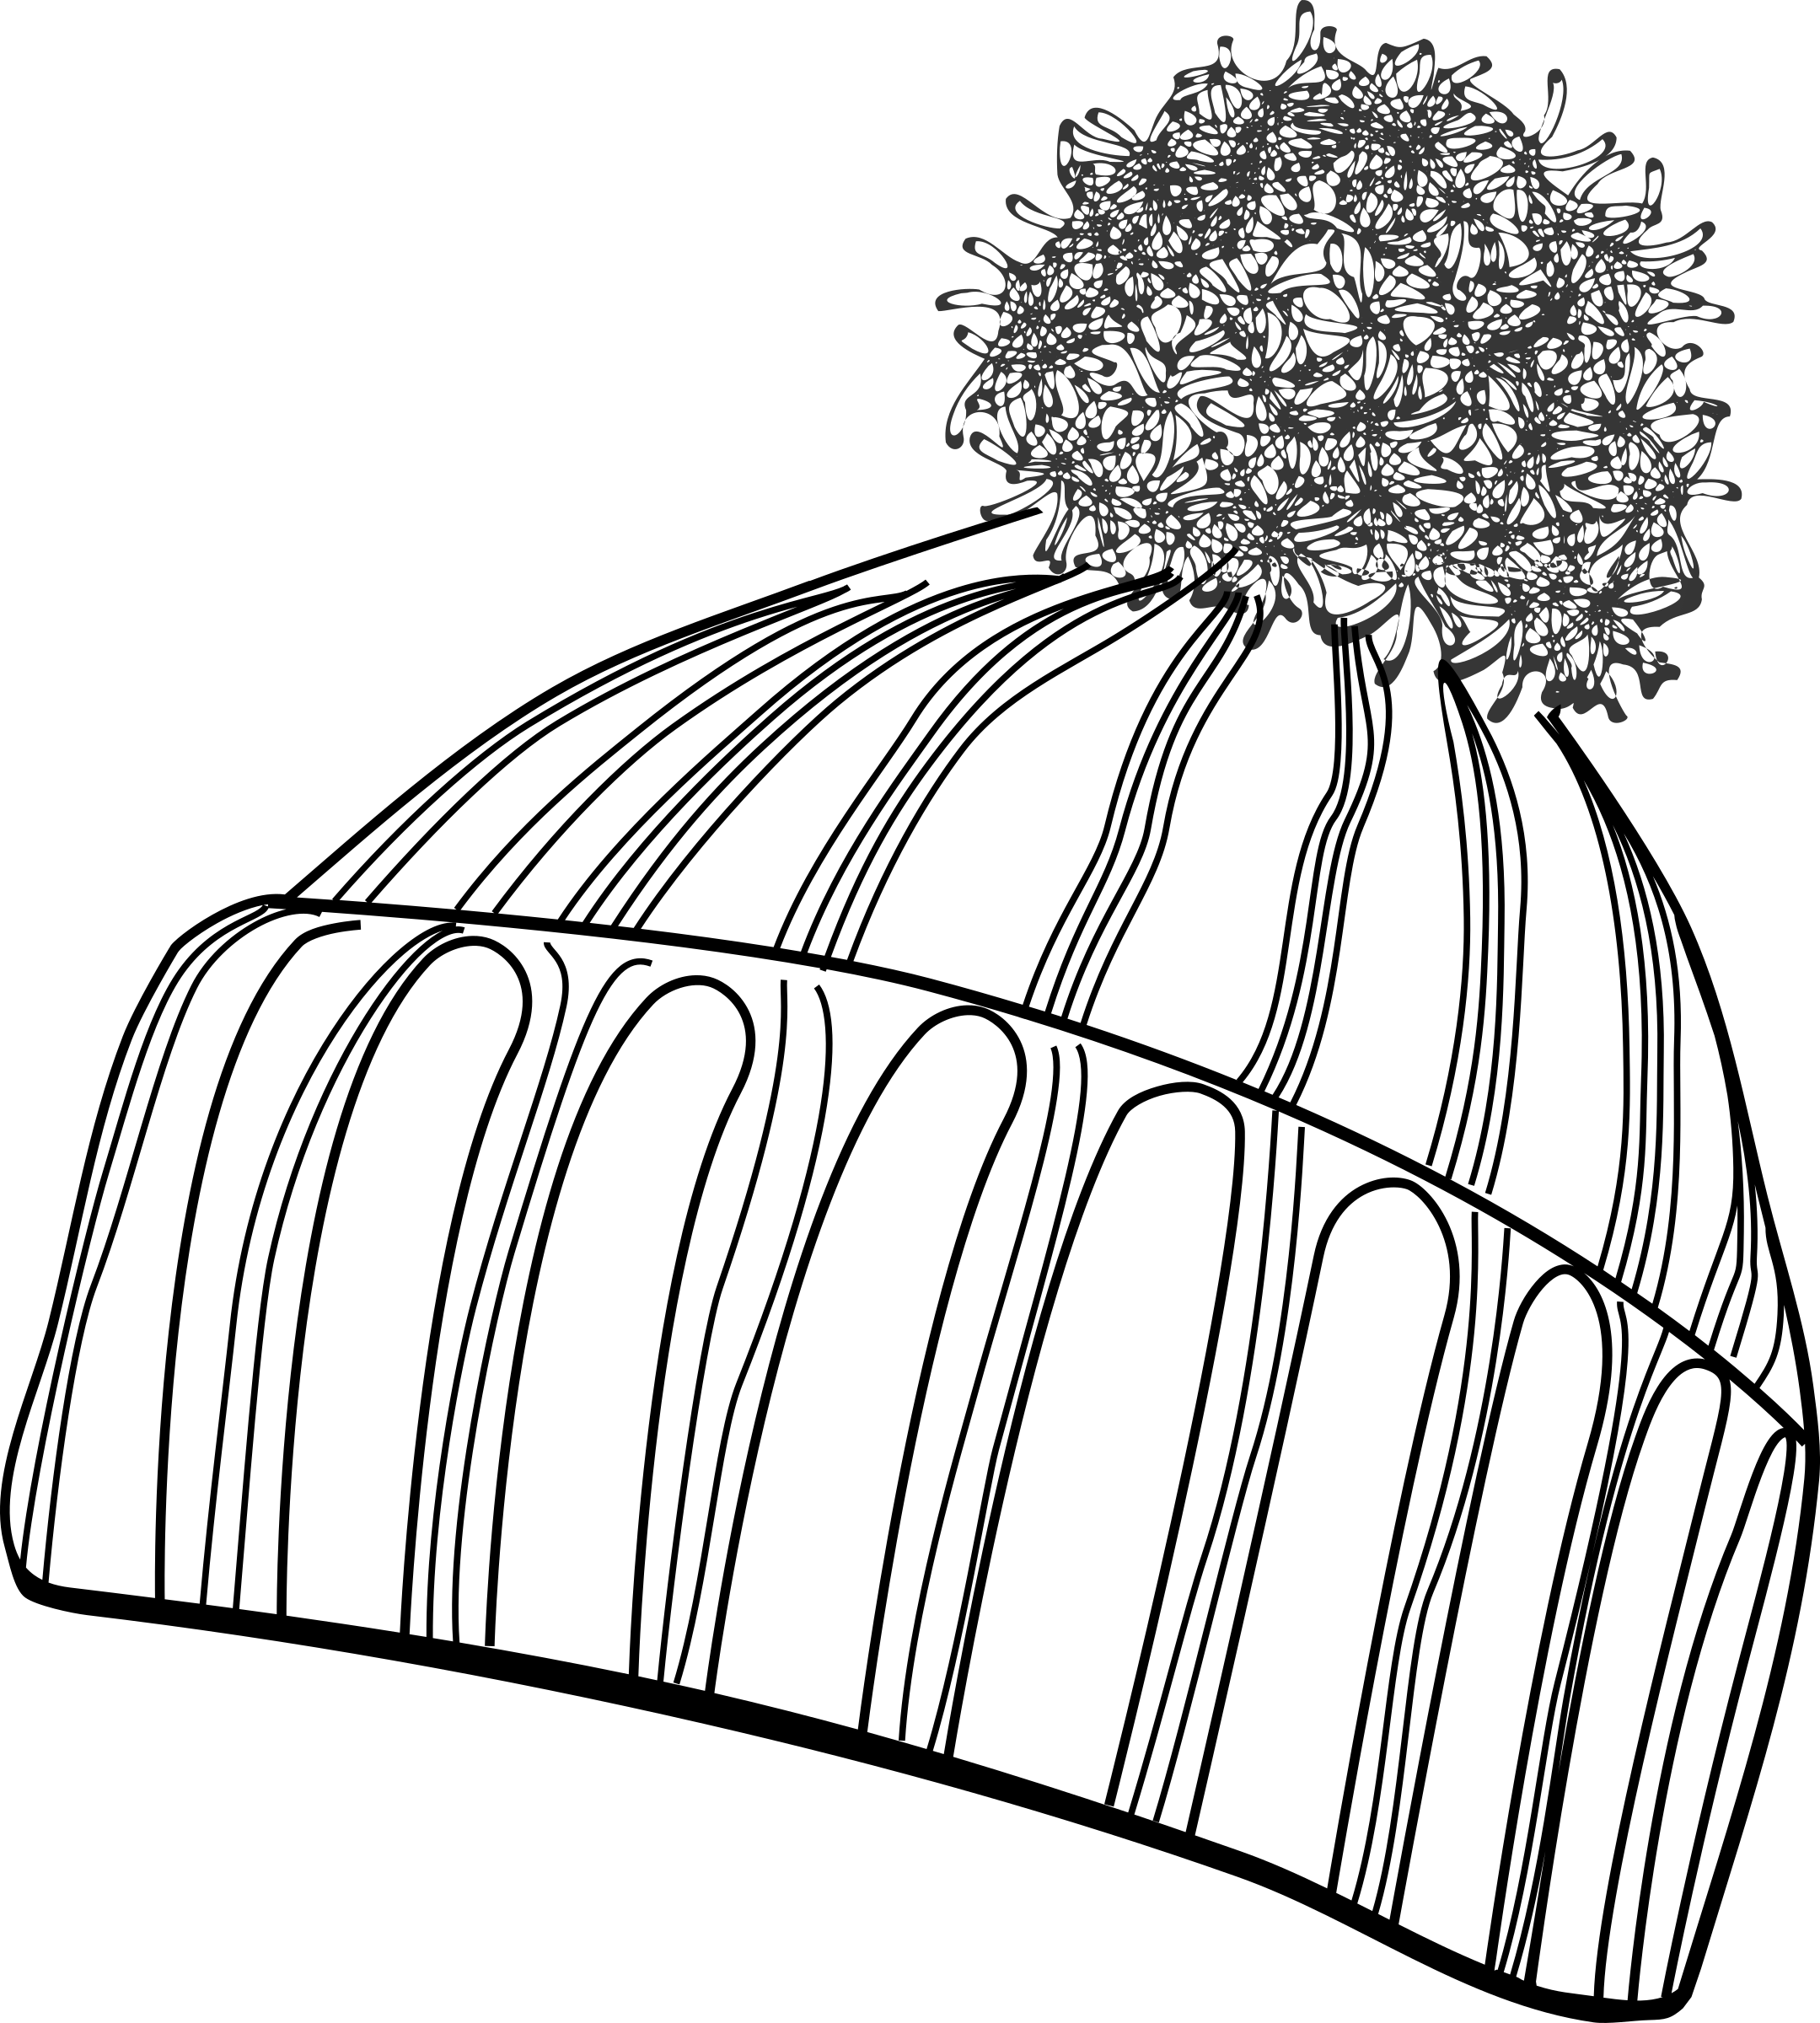 png black and white library Bobcap big image png. Log black and white clipart